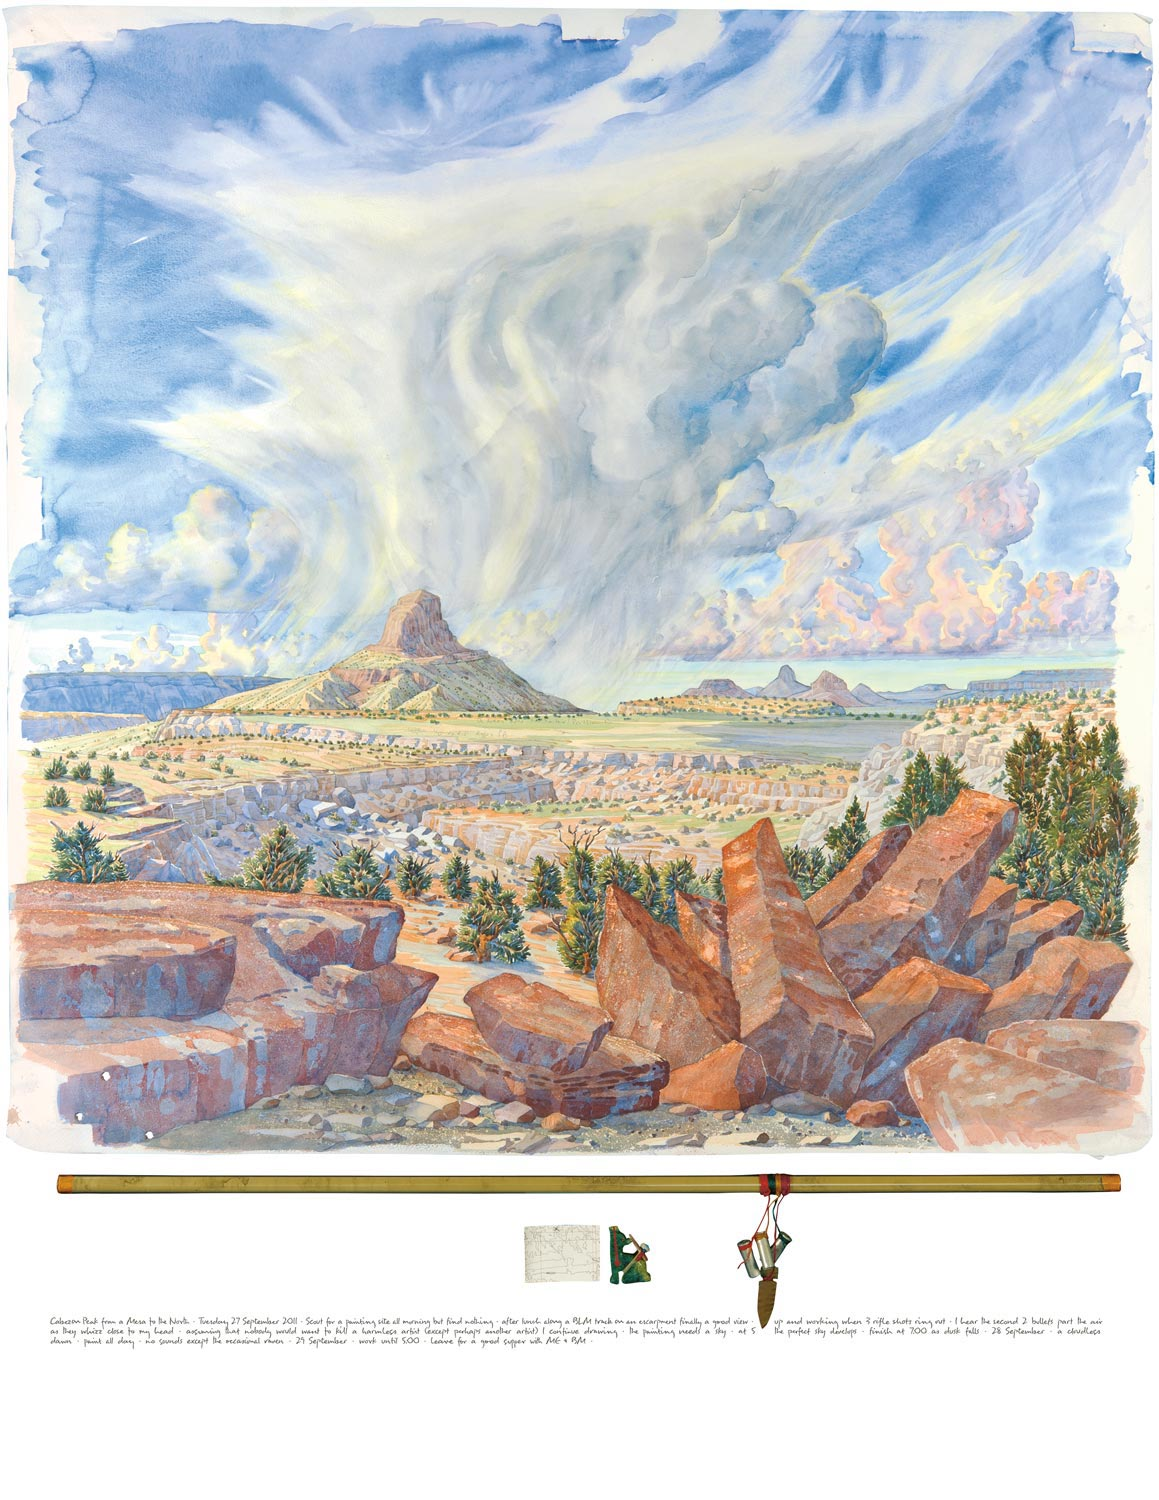 Tony Foster,  Cabezon Peak from a Mesa to the North , 2011  |  Watercolor and graphite on paper, talisman of mixed media symbolic objects including a stone arrowhead by Homer Etherton, map, mixed media Zuni coyote fetish  |  36 x 35 3/4 in. / 3 x 33 5/8 in.